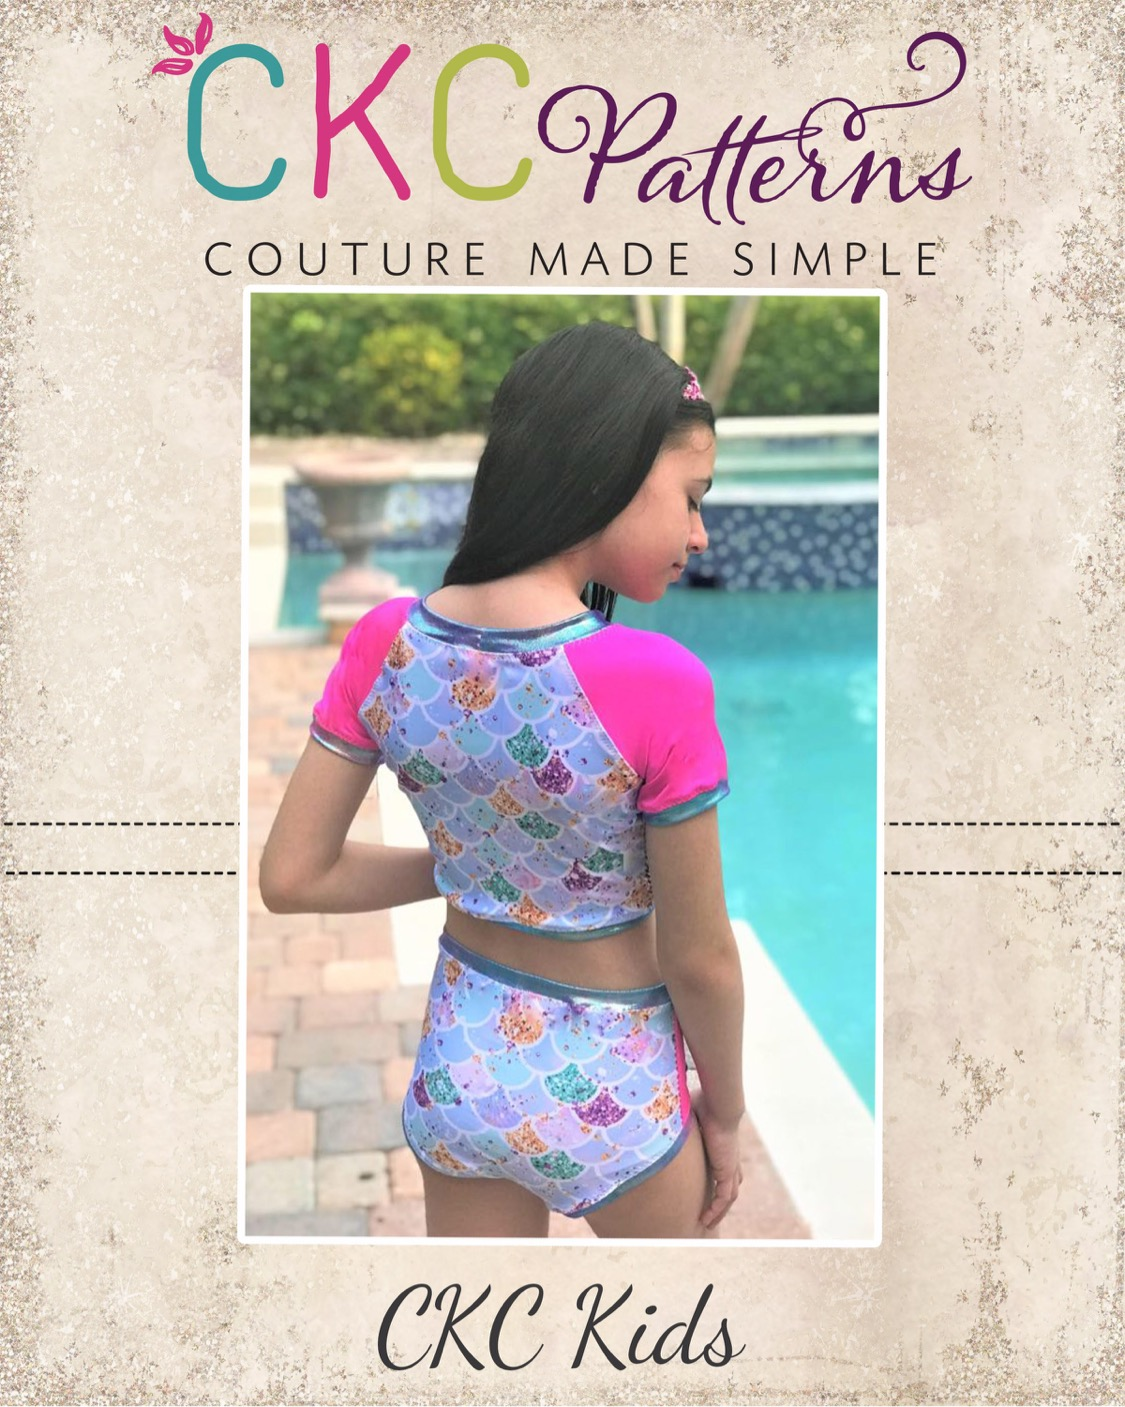 O'Shea's Oceanwear Sizes 2T to 14 Kids PDF Pattern